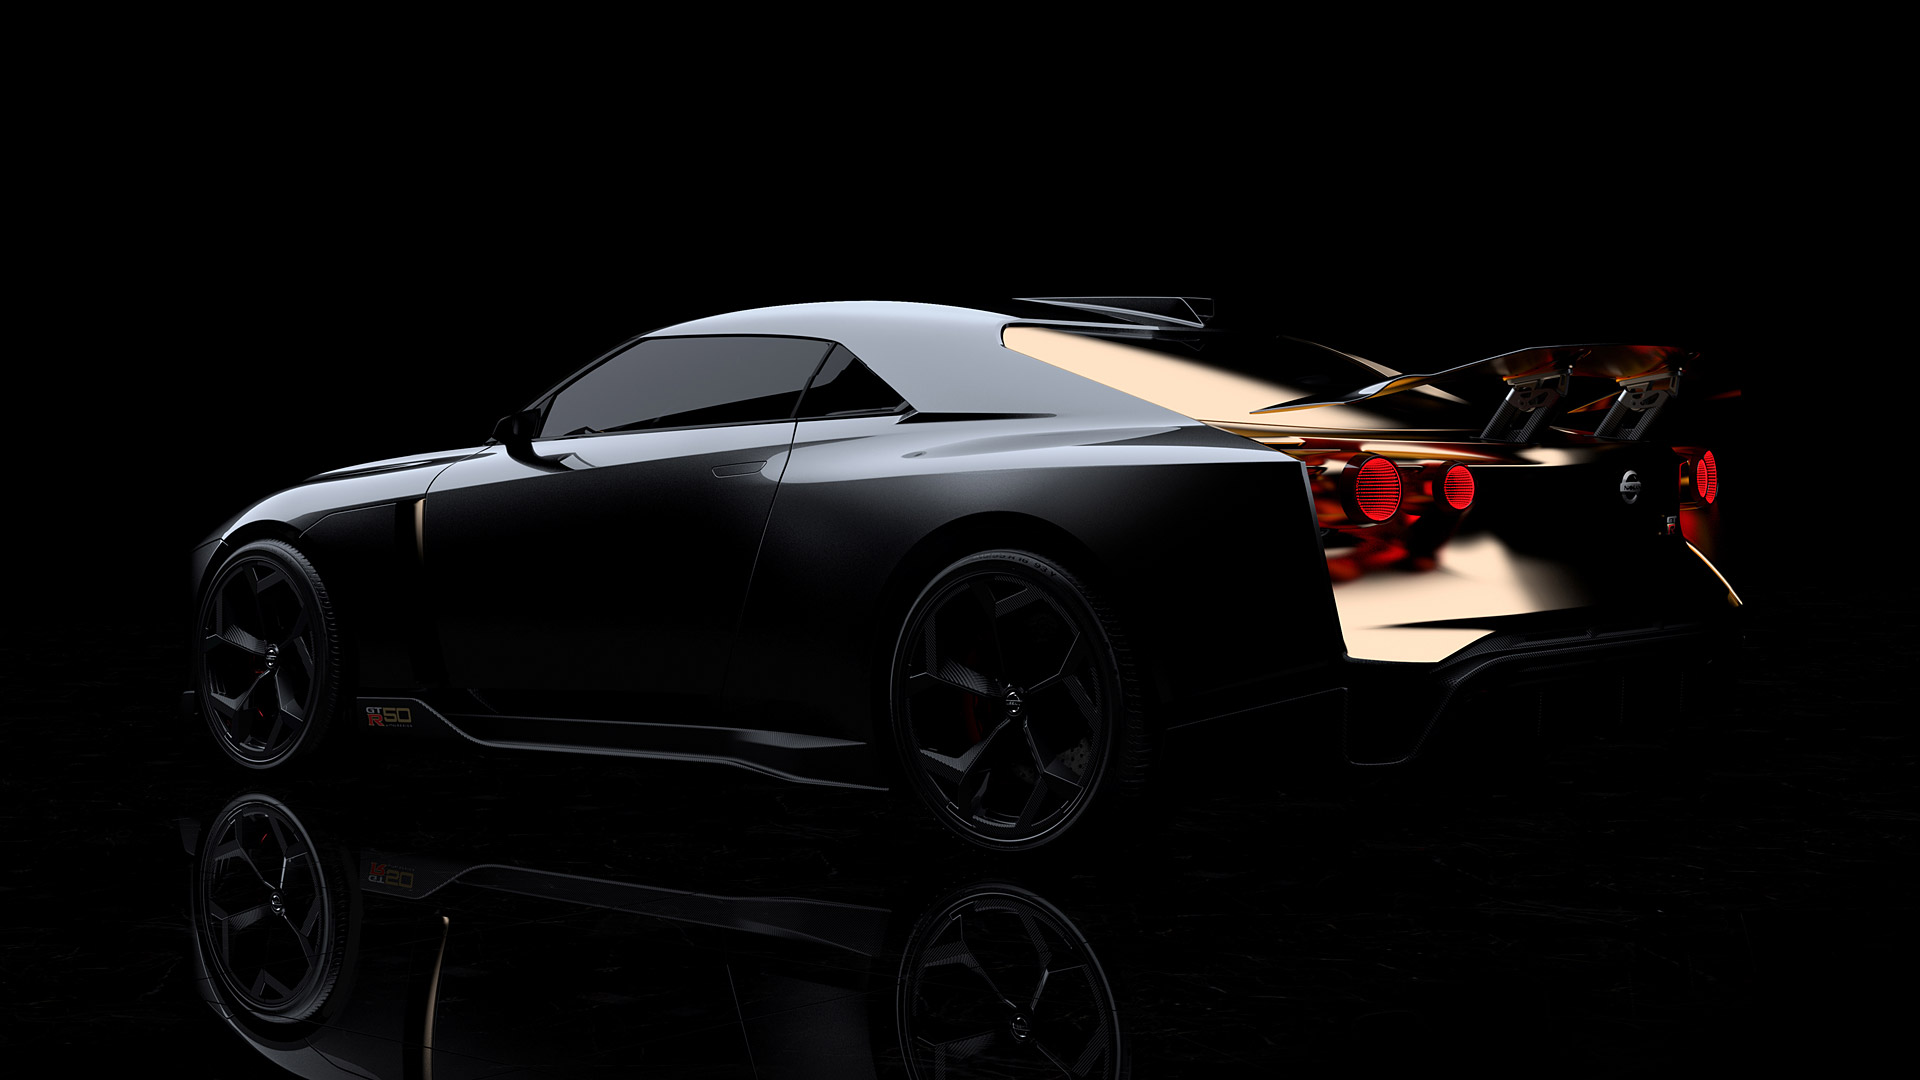 1920x1080 - Nissan Concept Wallpapers 15